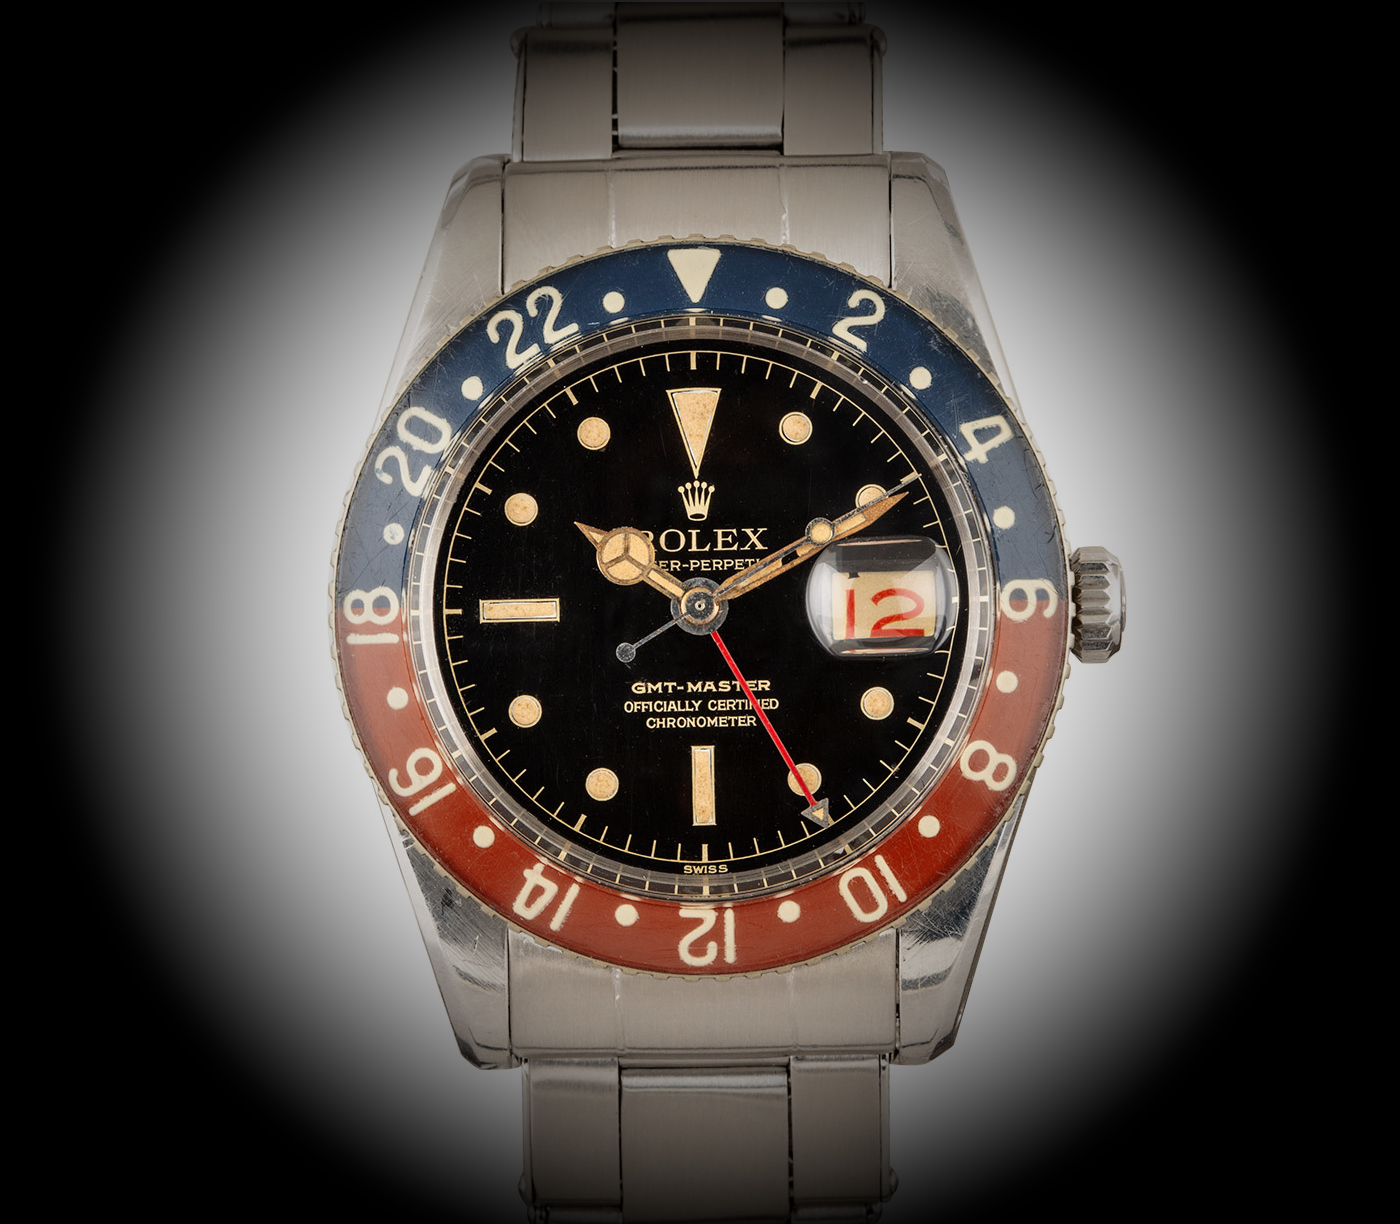 Iconic_watches_of_Hollywood_Rolex_gmt_master_pussy_galore_ref._6542-europa_star_watch_magazine_2020